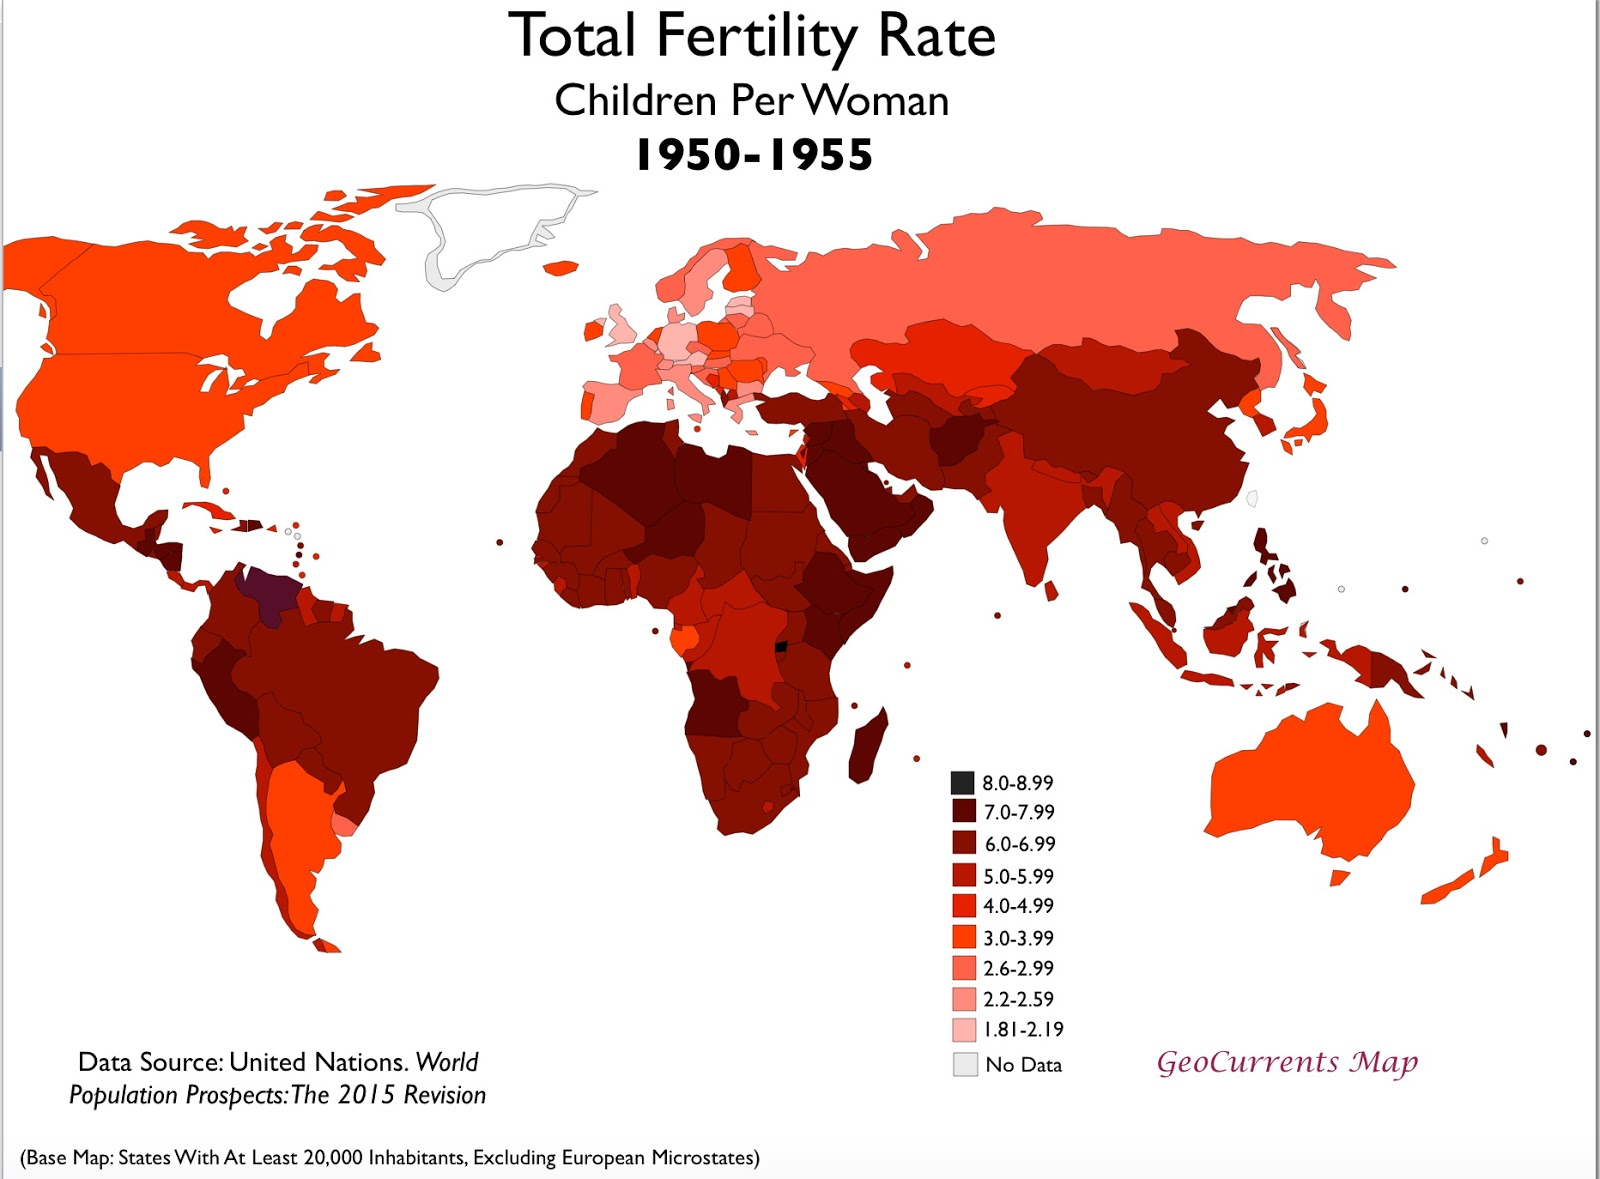 Total fertility rate (1950 - 1955)